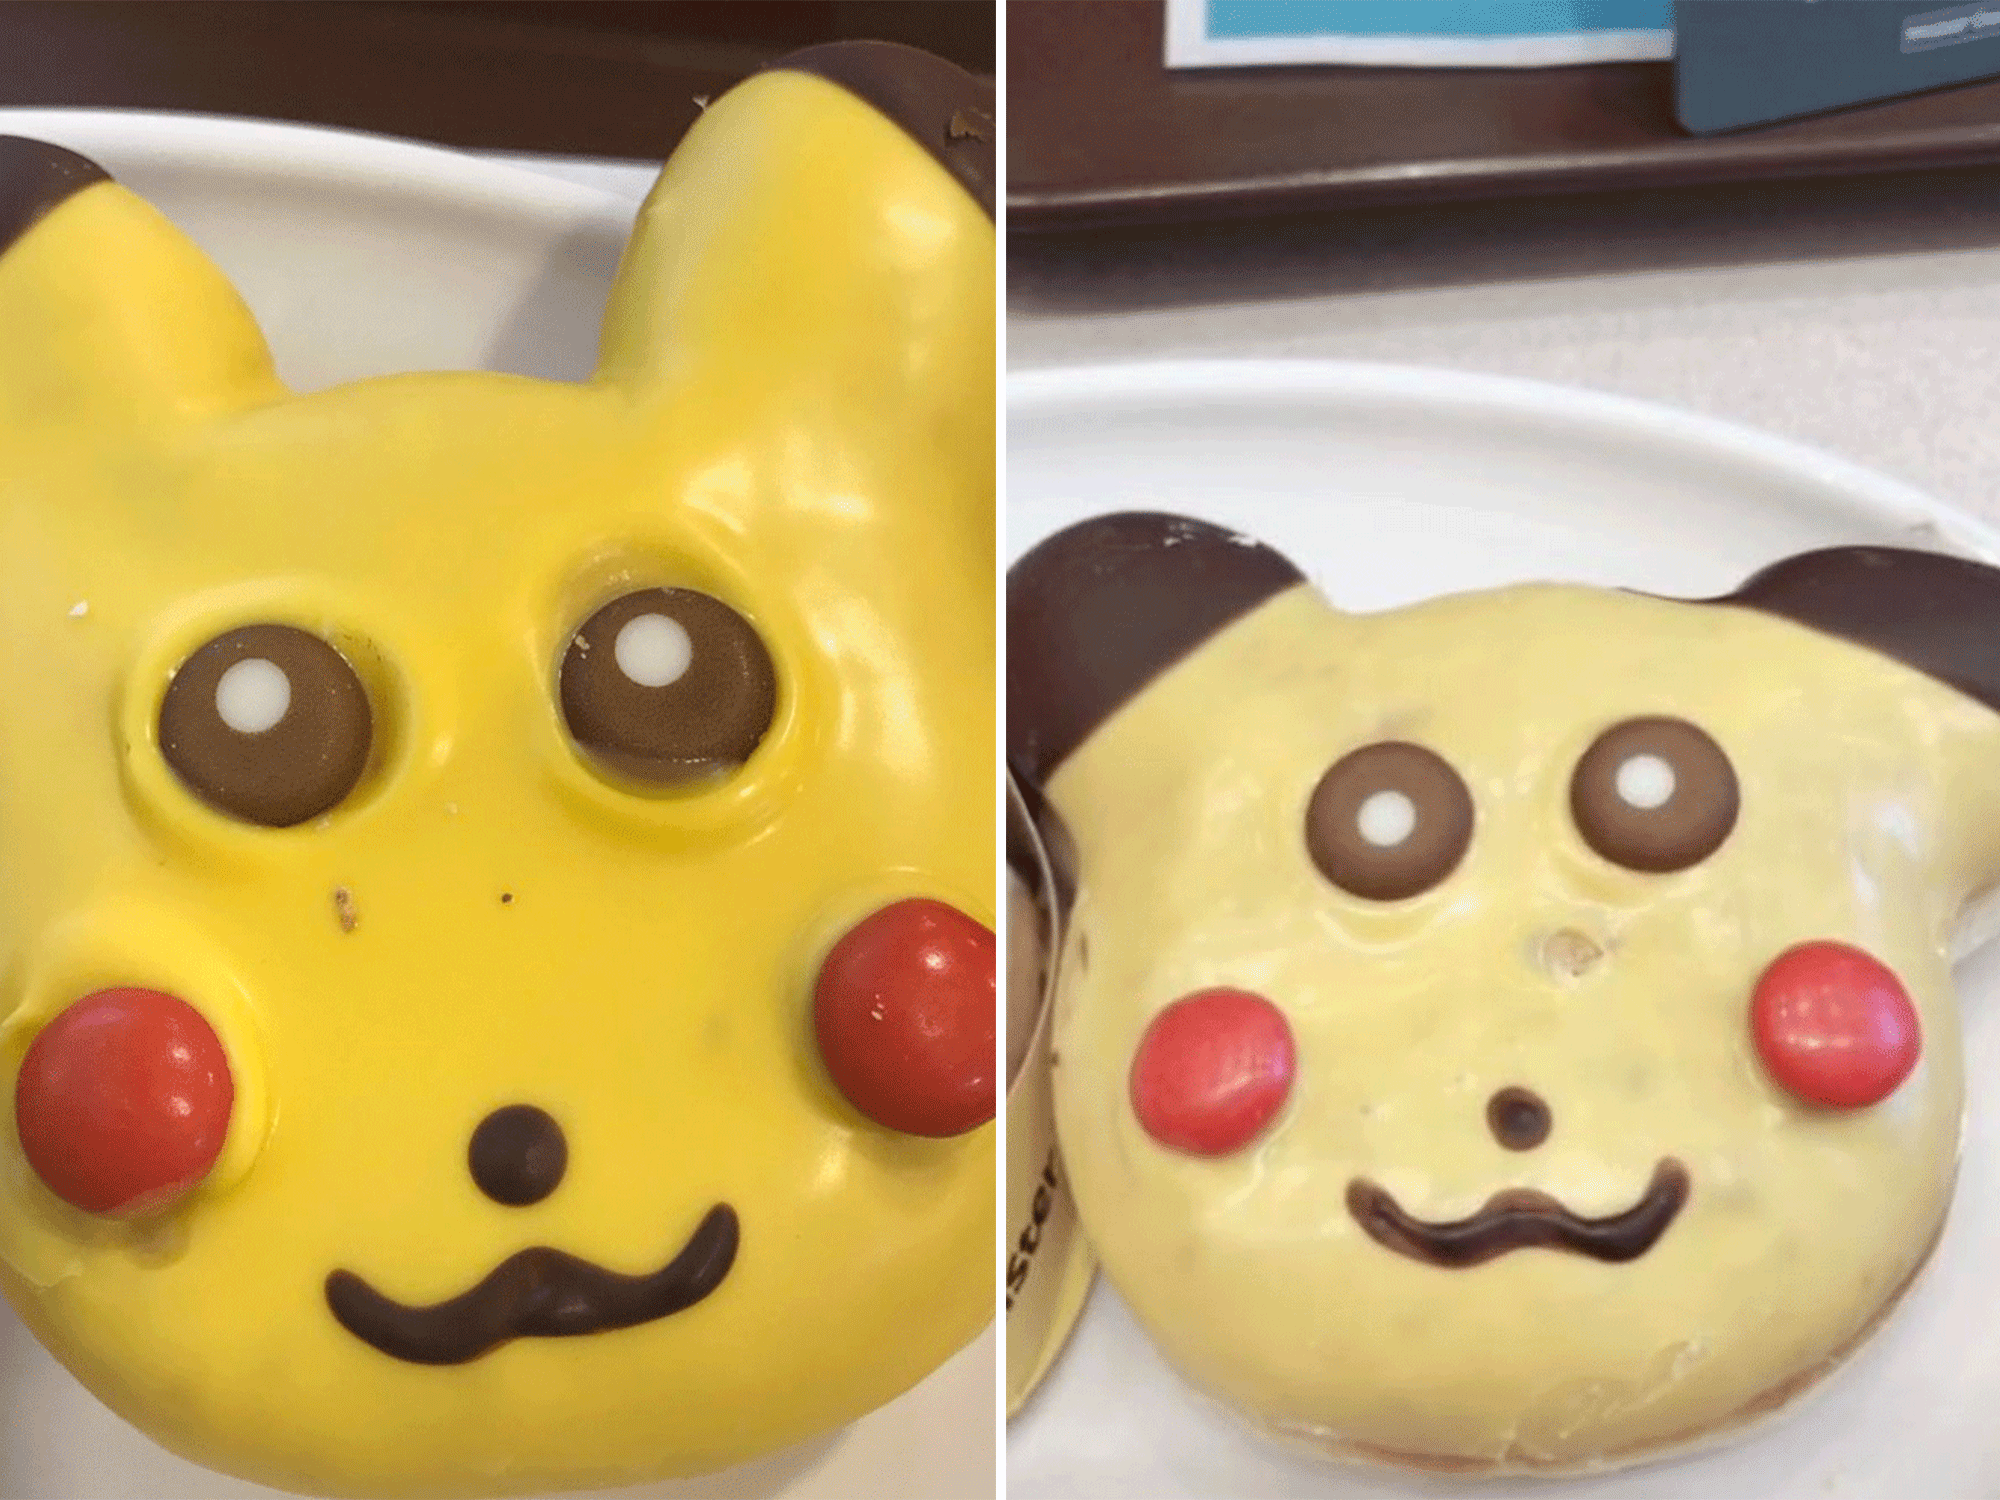 Pikachu Doughnuts Shelved for Being Too Creepy